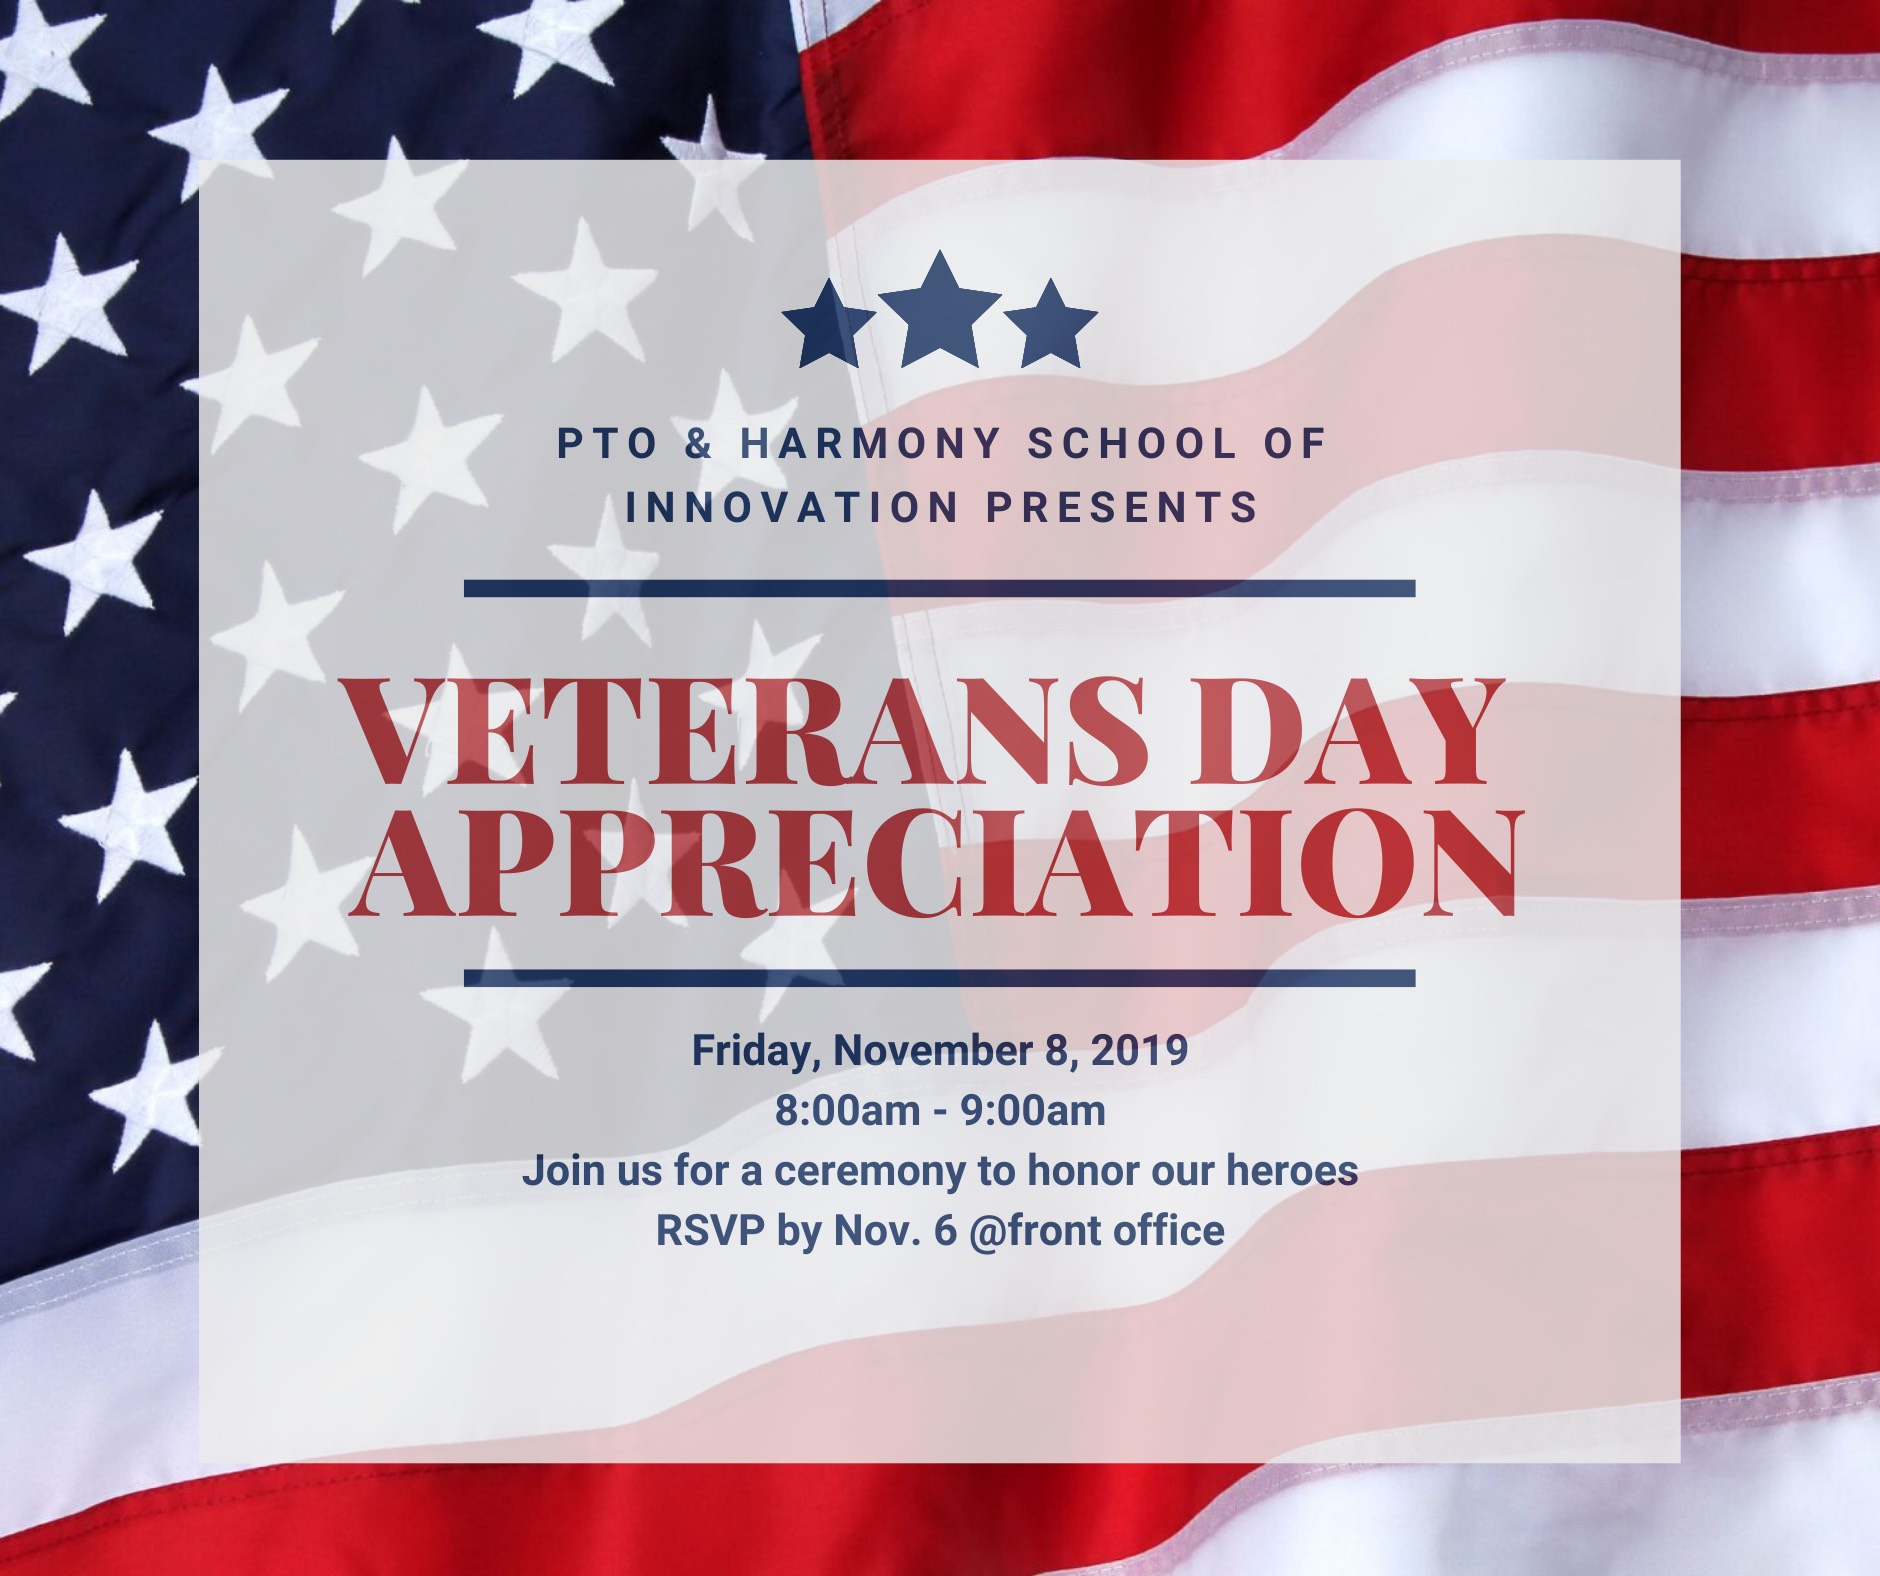 An image of PTO & HSI Veterans Day Appreciation flier on Friday, November 8th, from 8-9am. RSVP at the front office